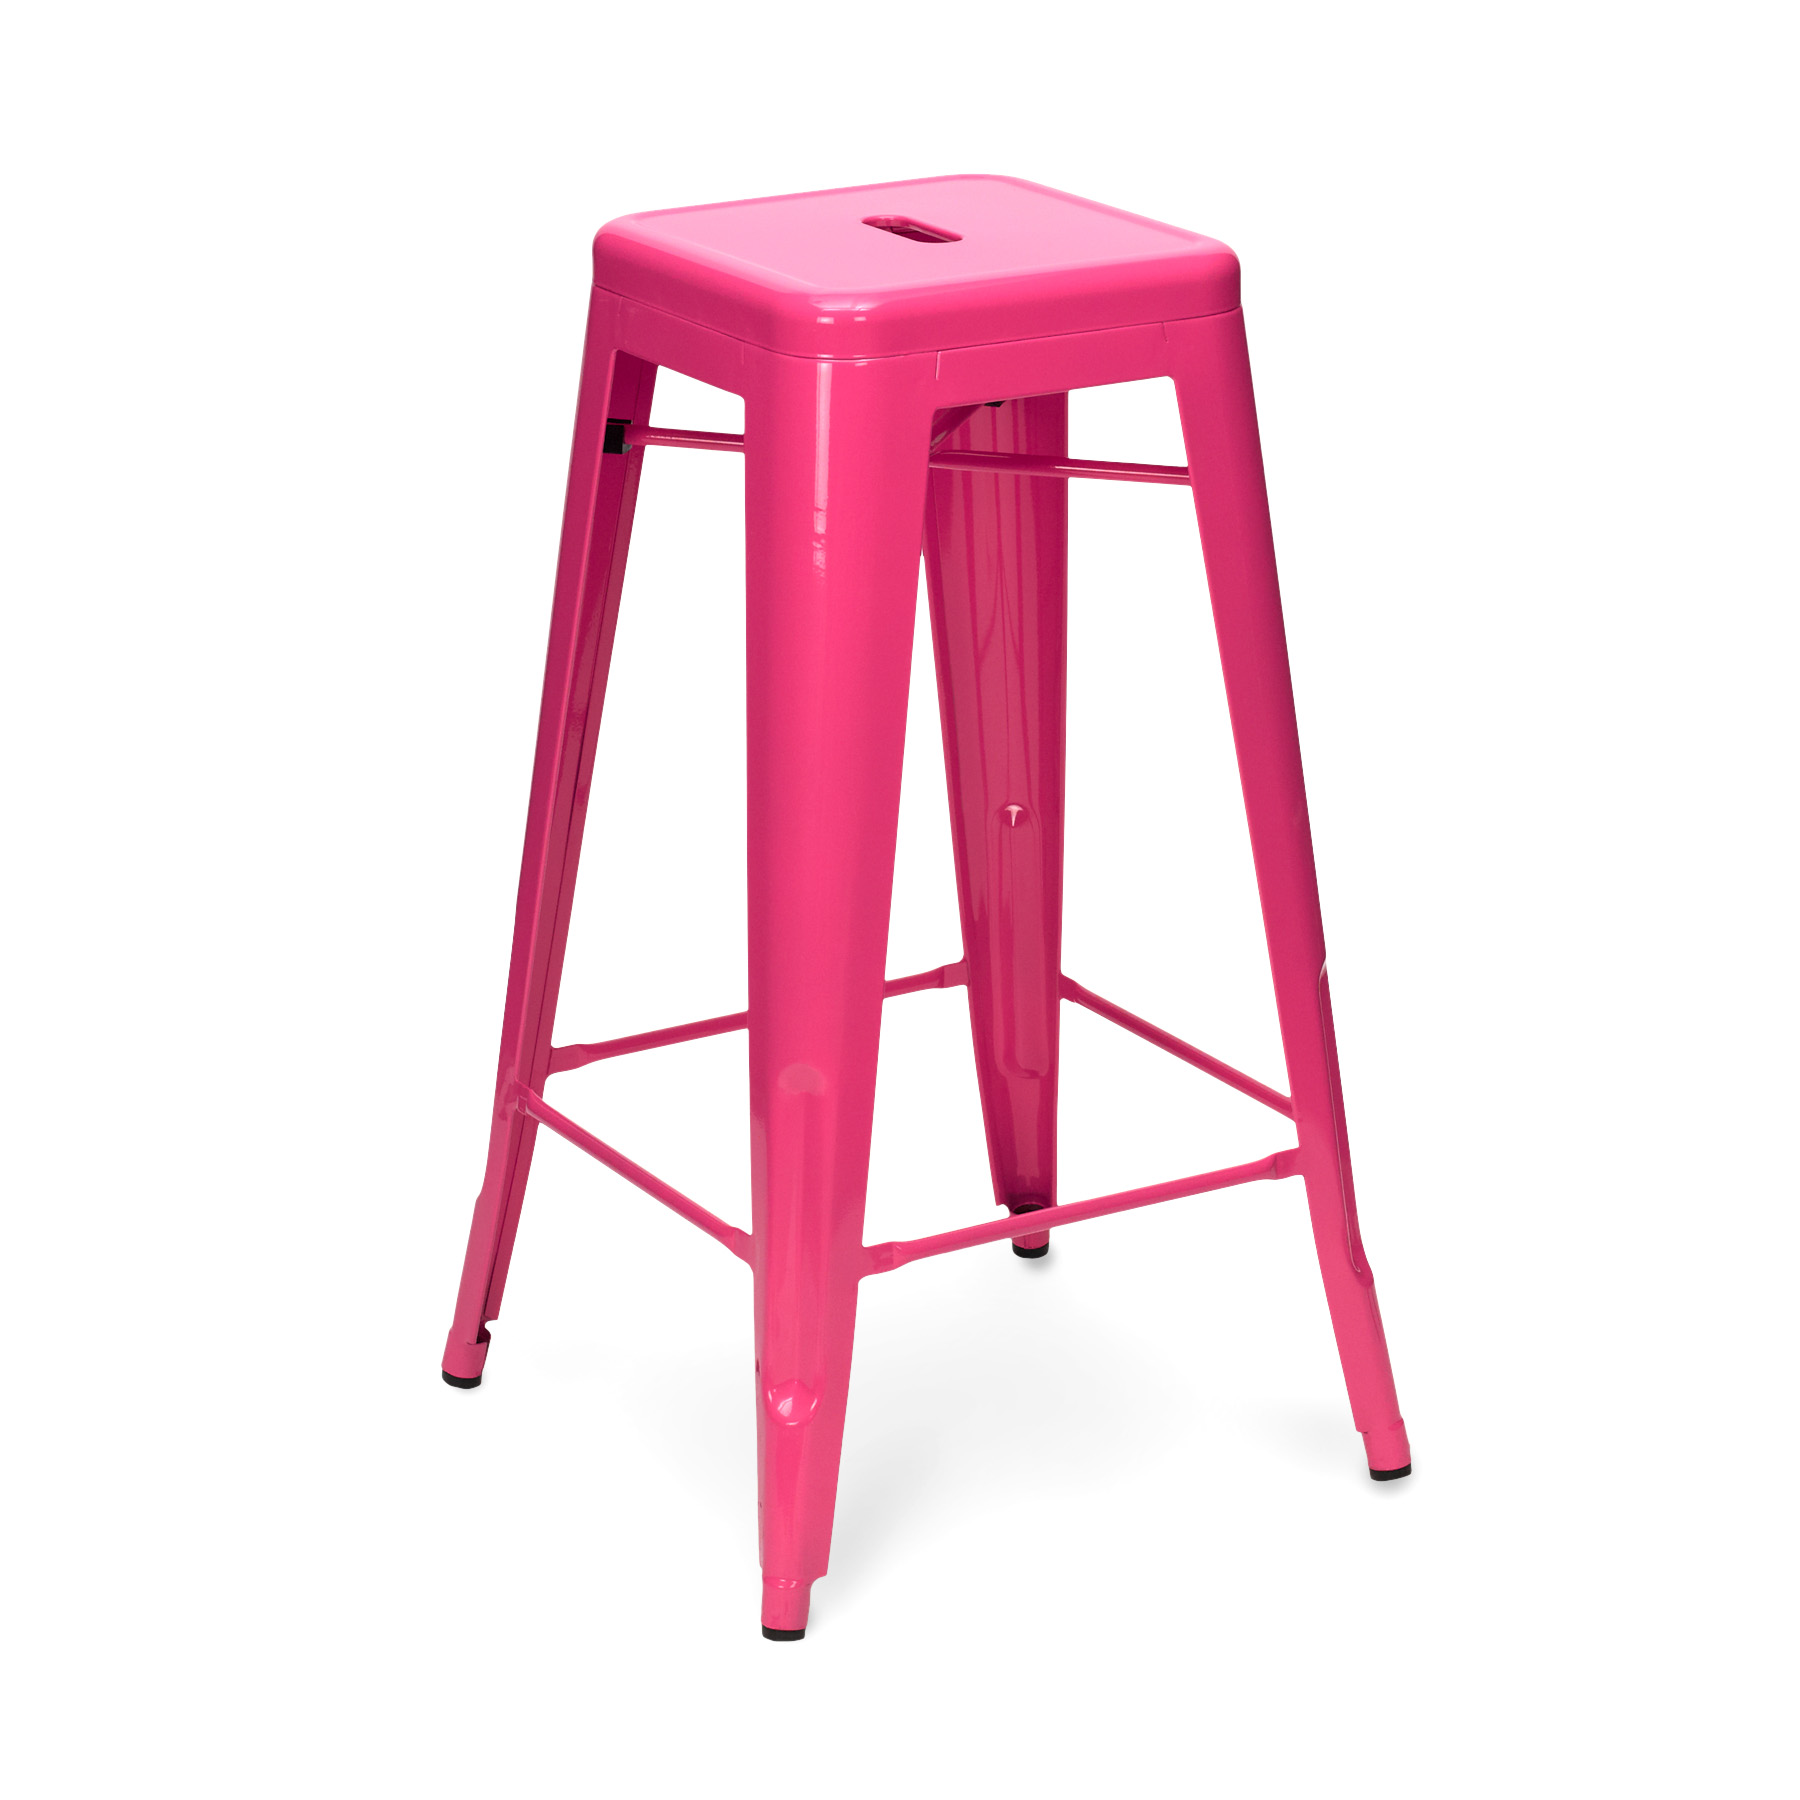 bar height high chair images guide to choosing the right kitchen